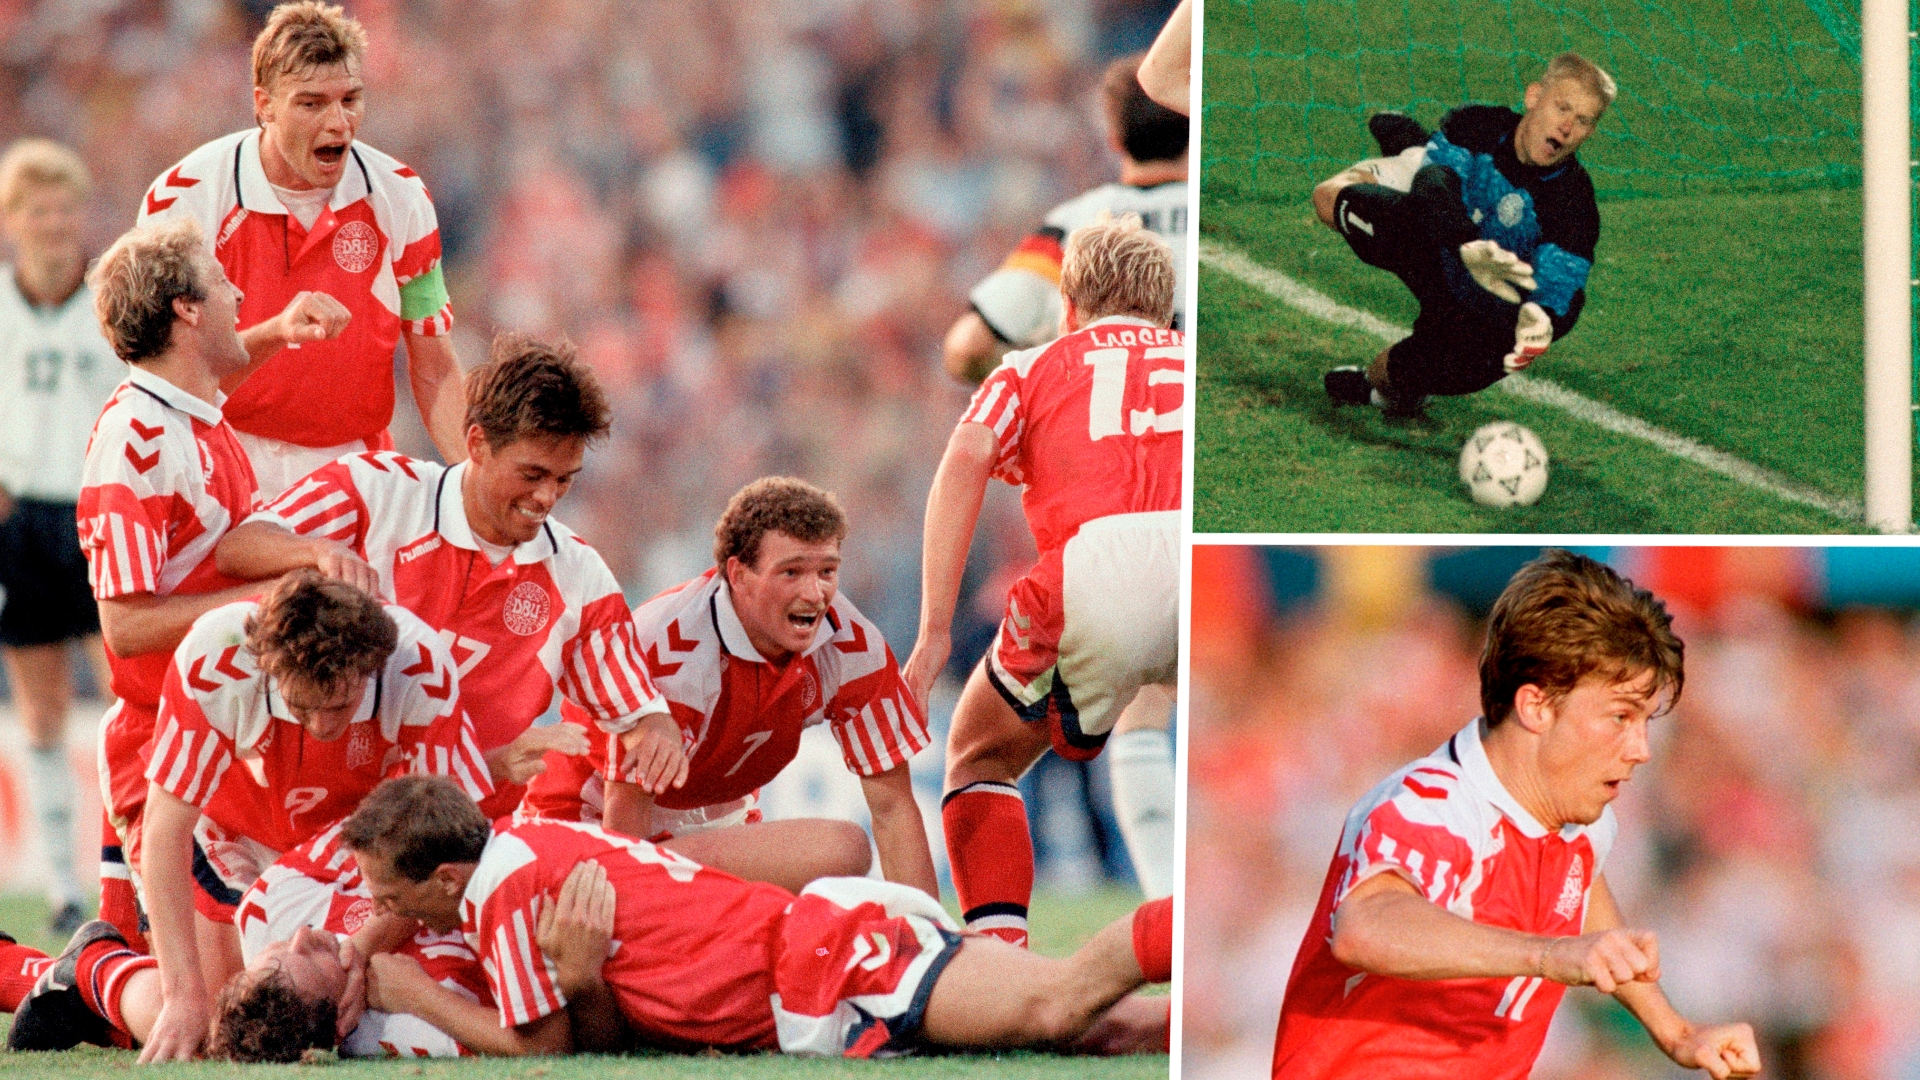 Denmark Euro 92 champions: Squad, how they qualified and how they shocked Europe to win